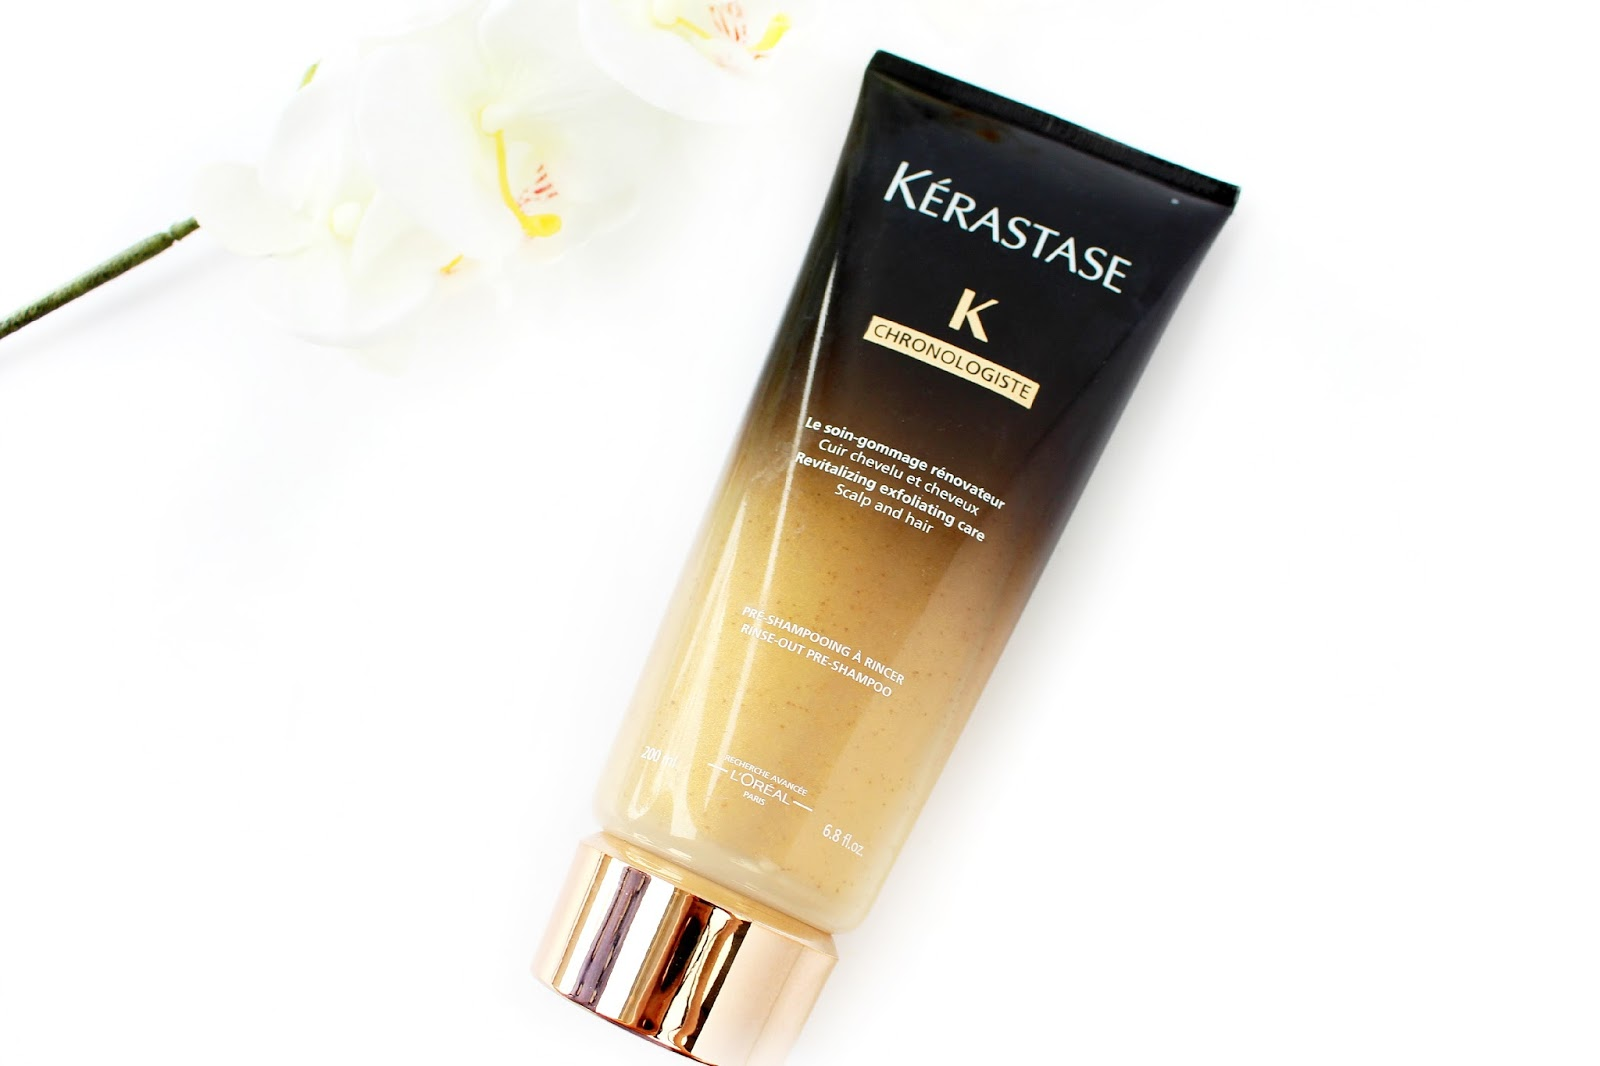 Kerastase Chronologiste Revitalizing Exfoliating Care